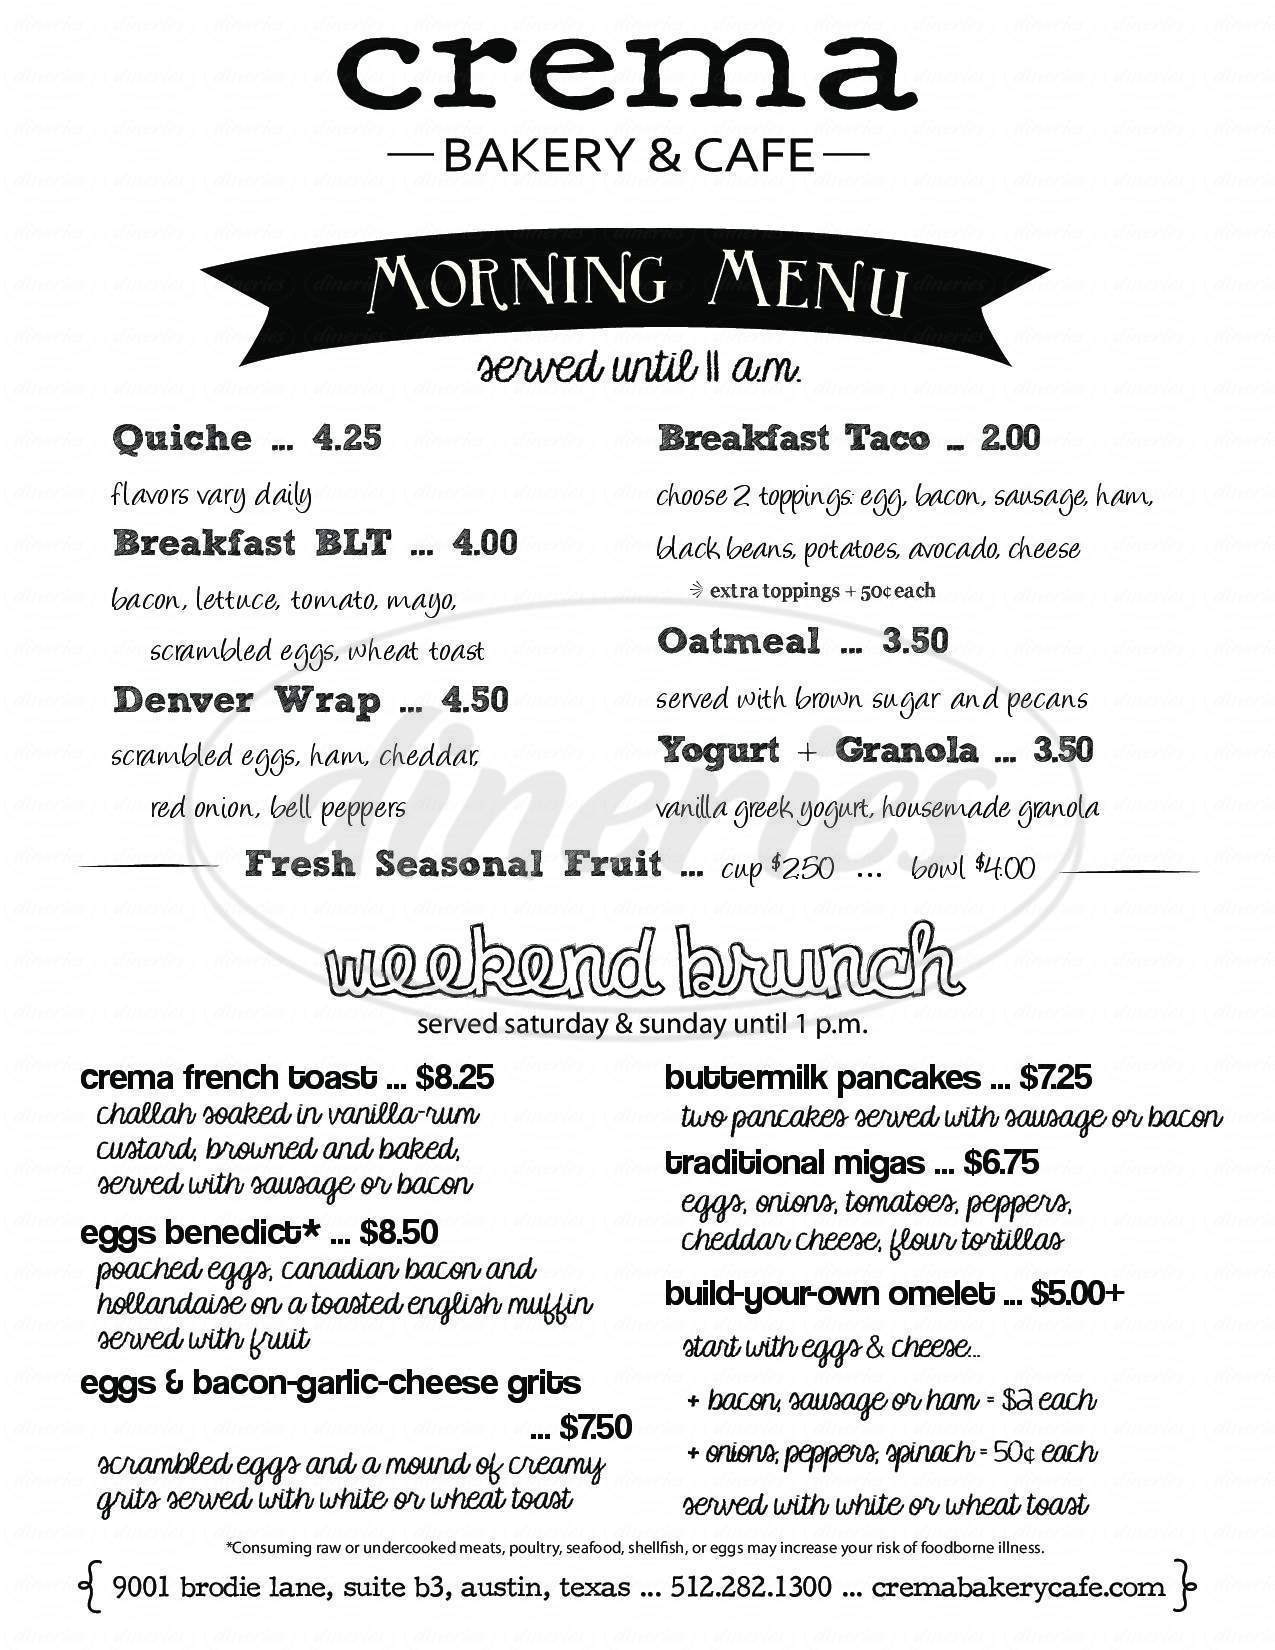 menu for Crema Bakery & Cafe